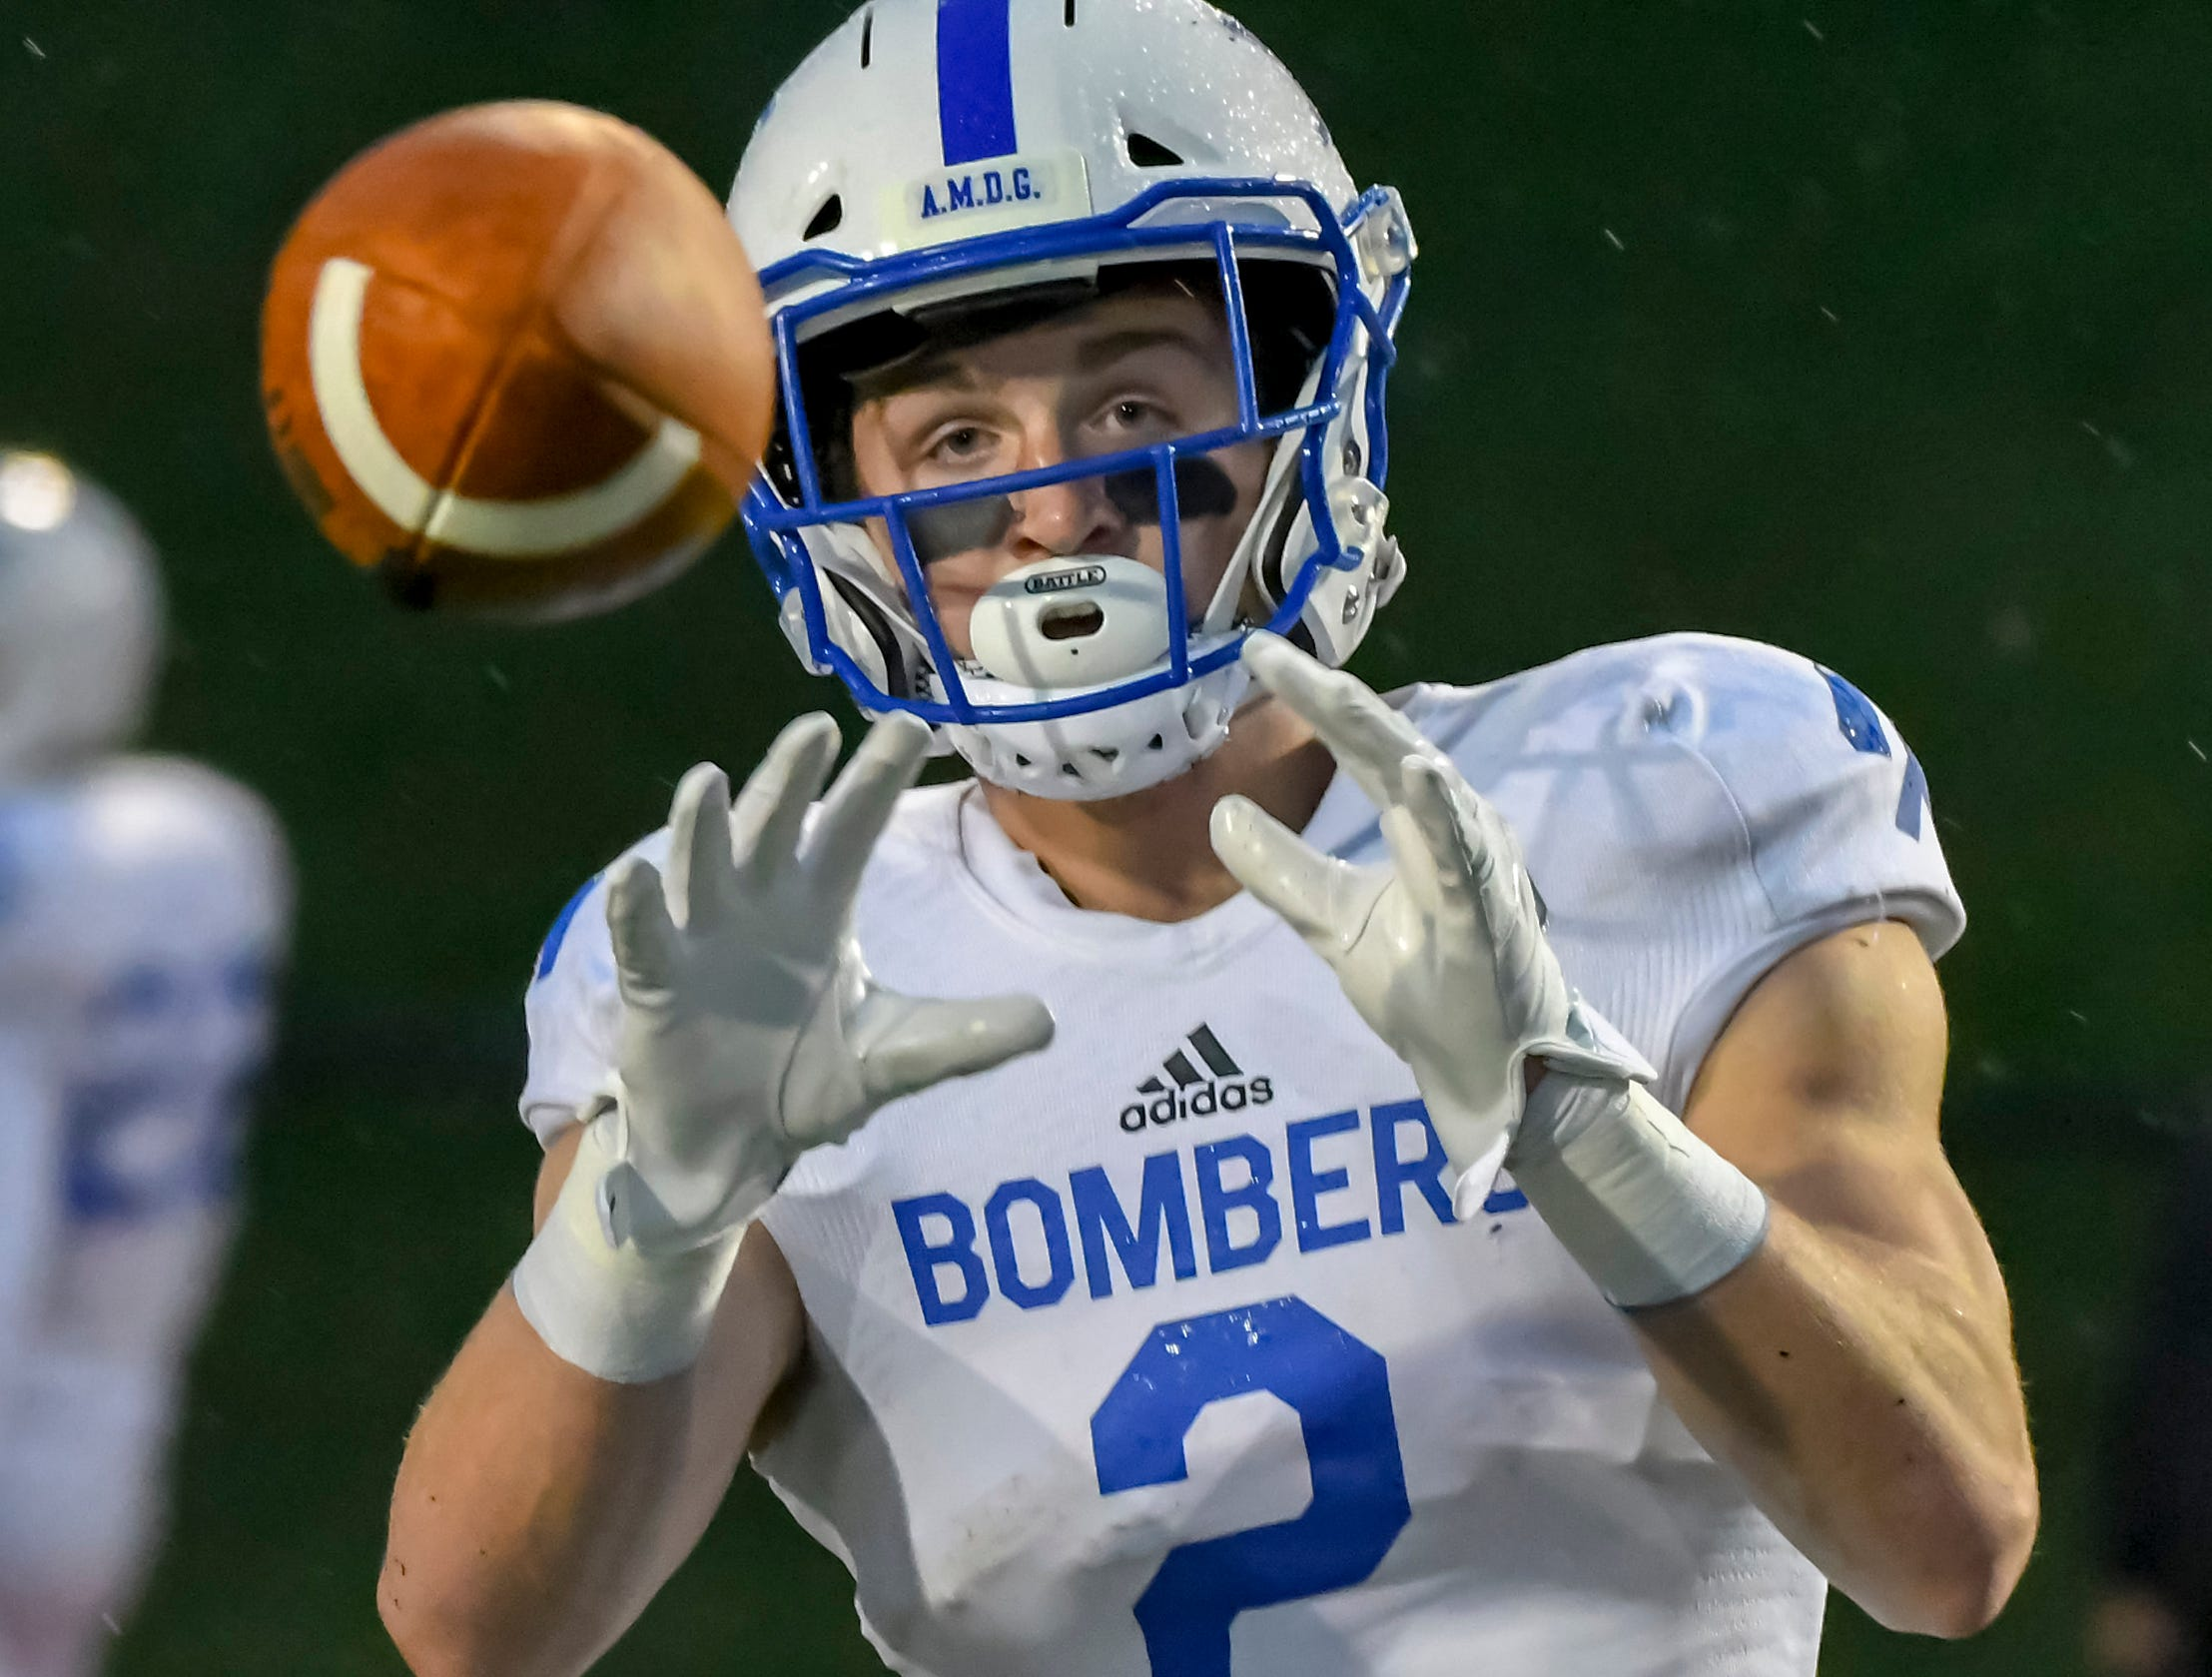 St. X receiver Liam Clifford receives a pass during warm ups before the game against Colerain in the OHSAA DI Region 4 Playoffs at Colerain High School,  Friday Nov. 2, 2018